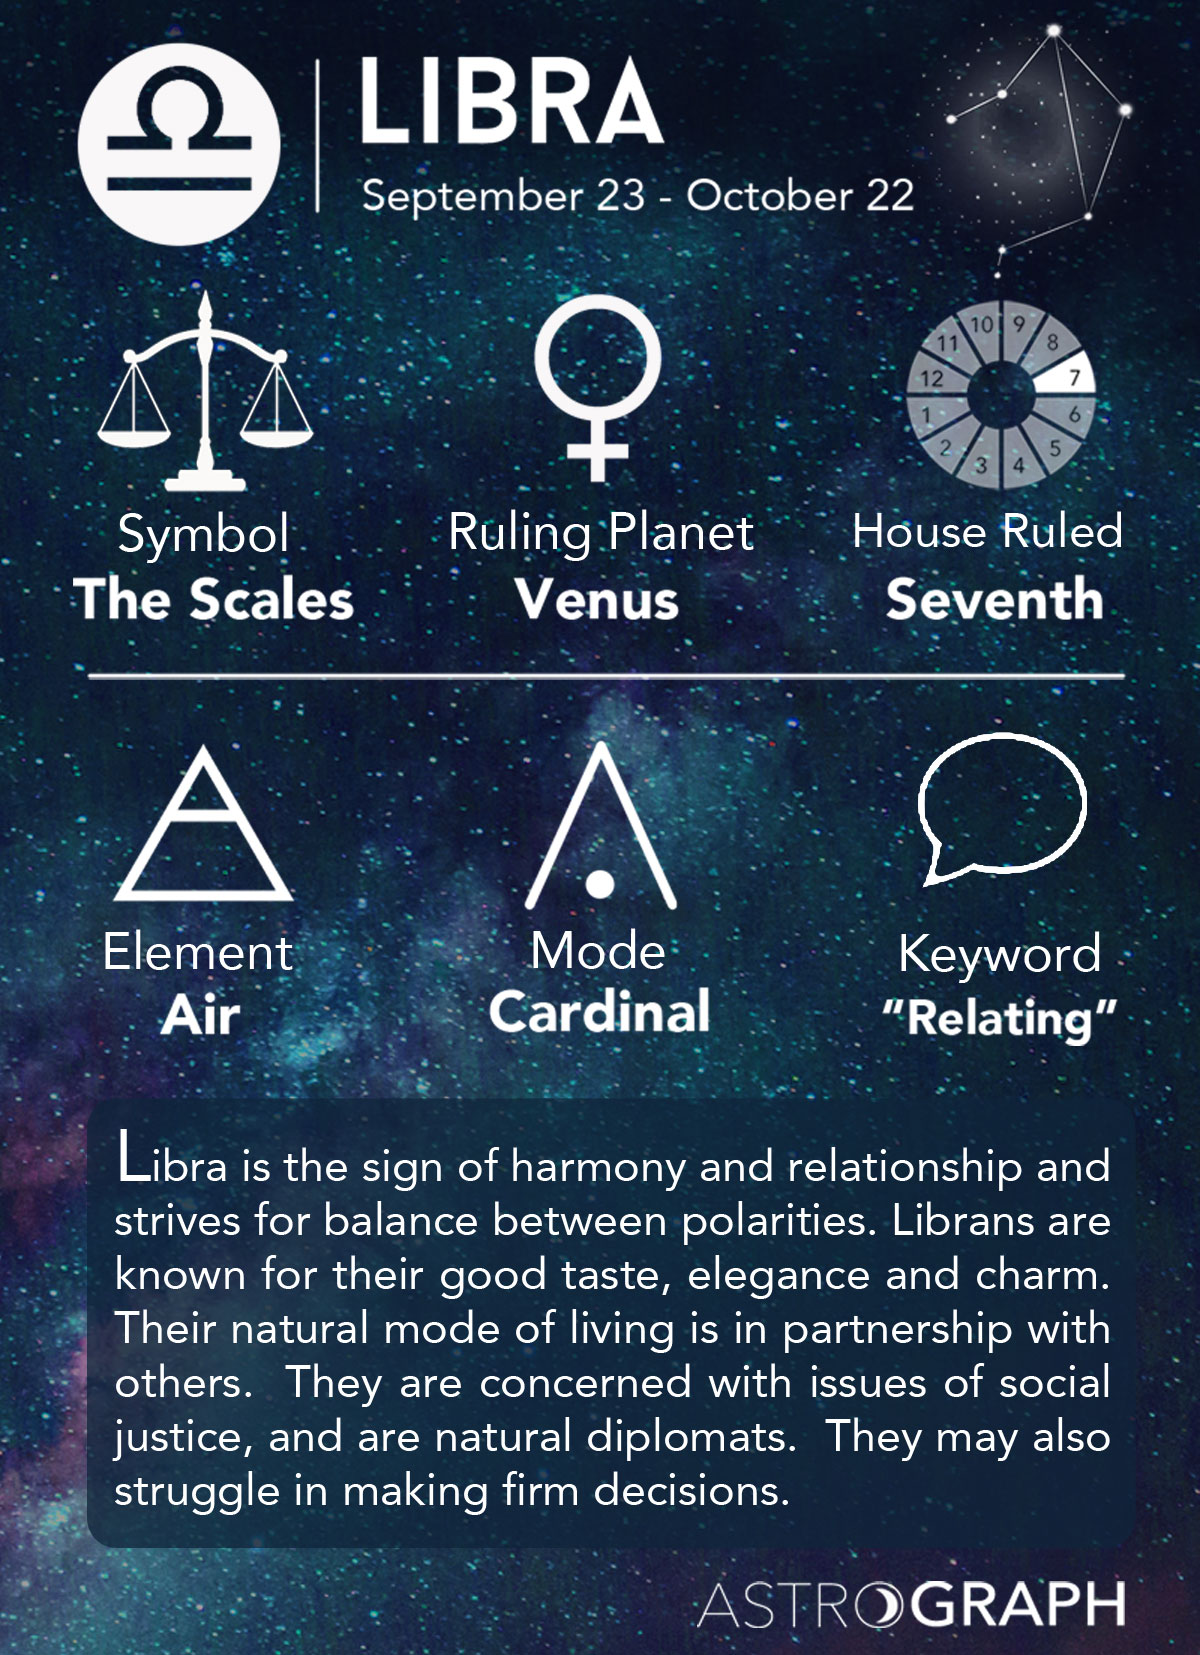 Zodiac signs astrology libra